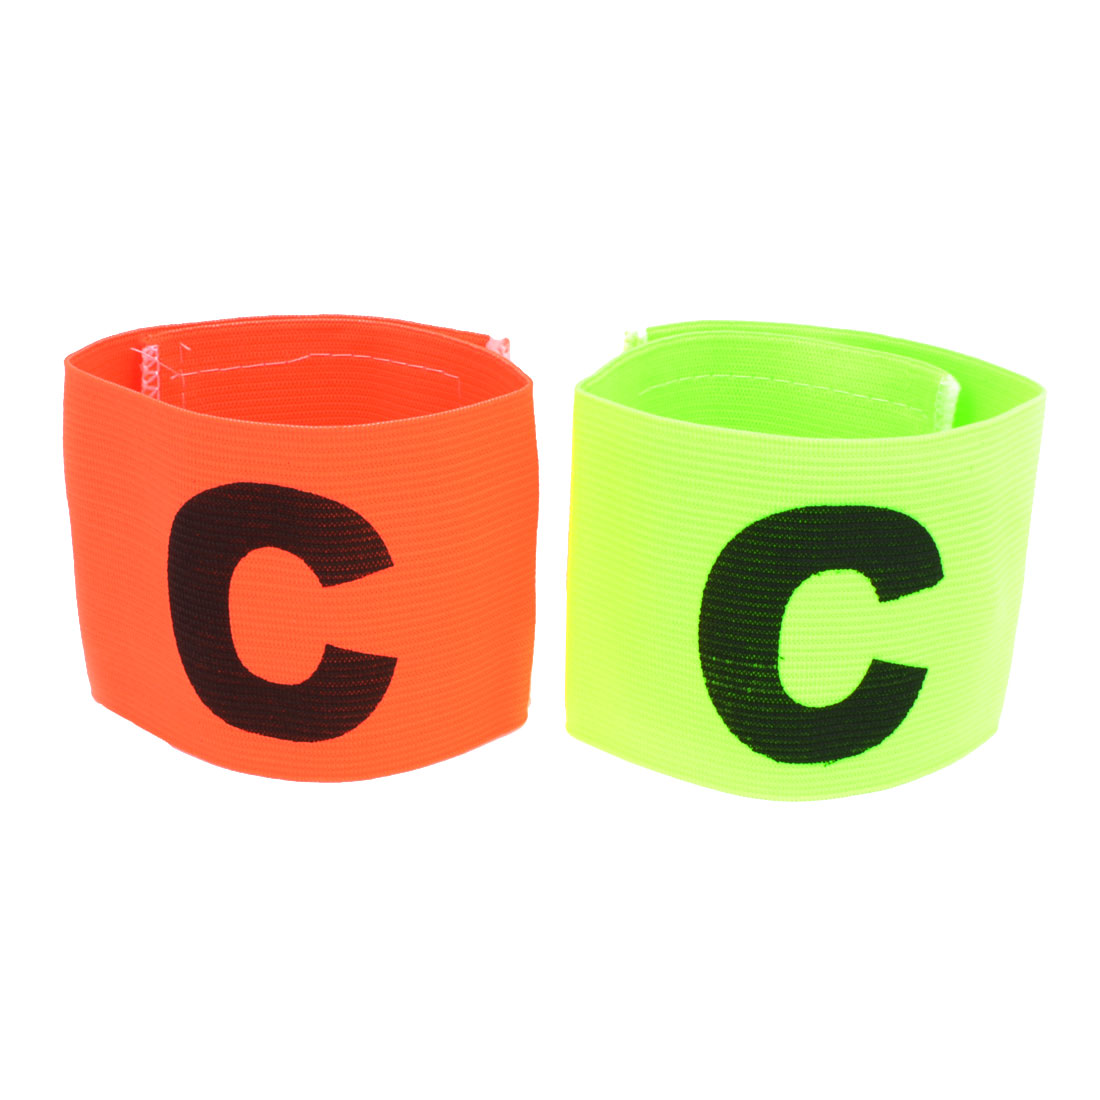 Sports Ball Game Character C Printed Elastic Captain Armband Sleeve 2pcs